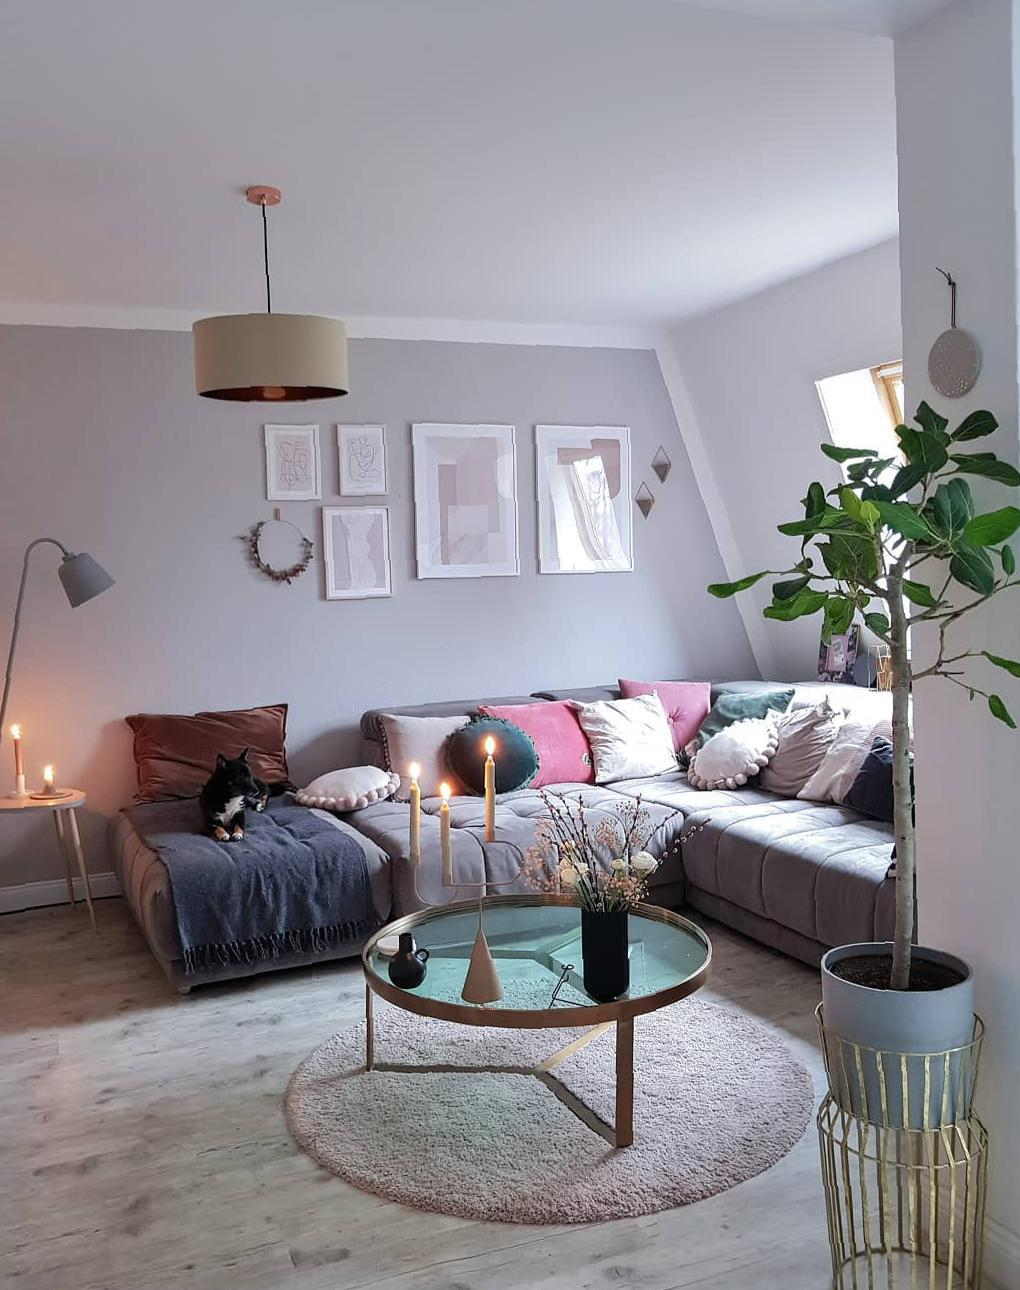 35 Ingenious Ideas To Decorate Your Home With Adding A Greenery - Page 8 of 12 - Guide19 Blog